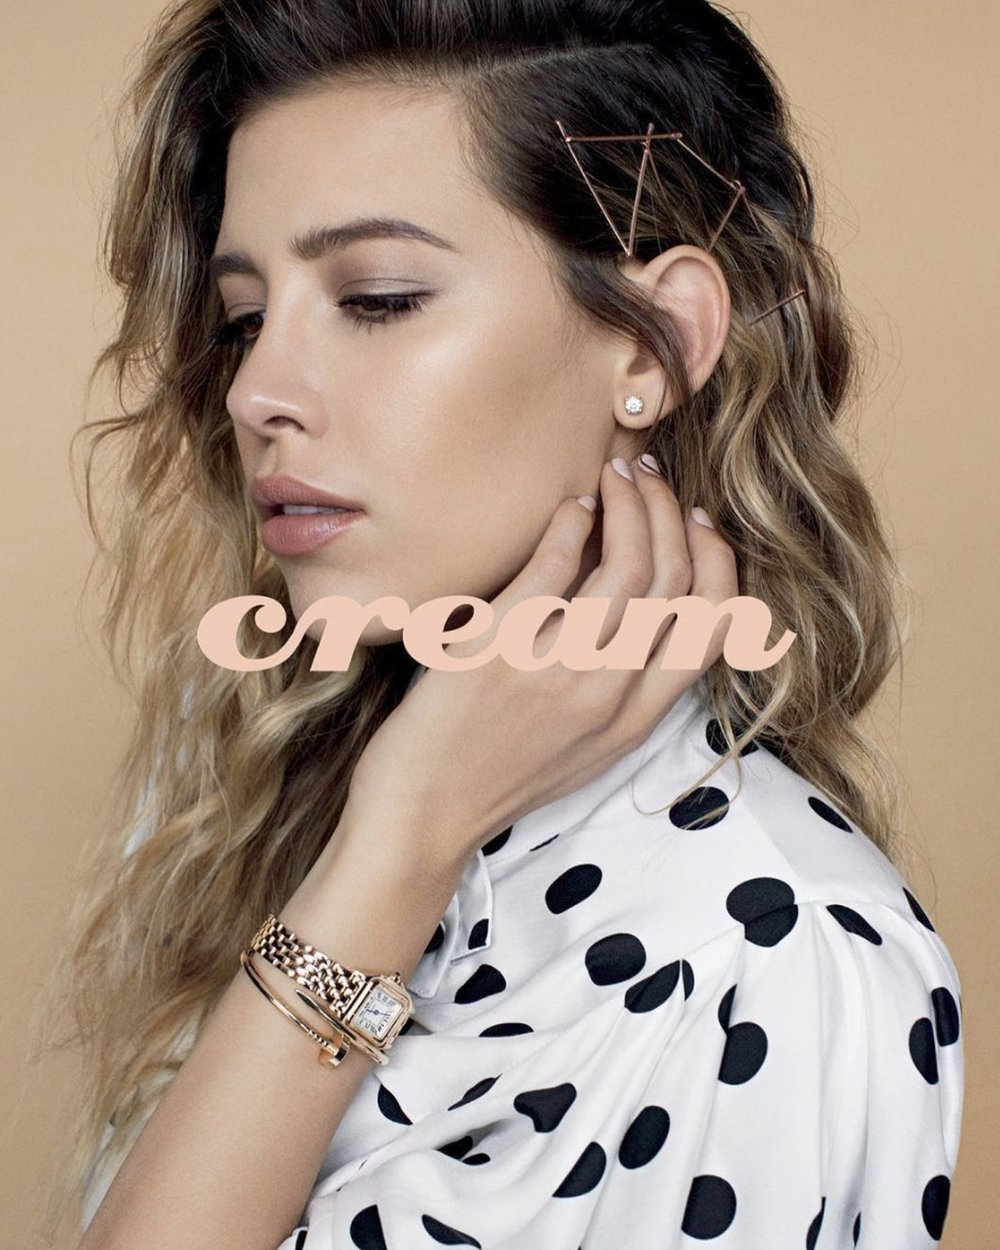 Cream Magazine/ Michelle Salas/ Ashley Frangie